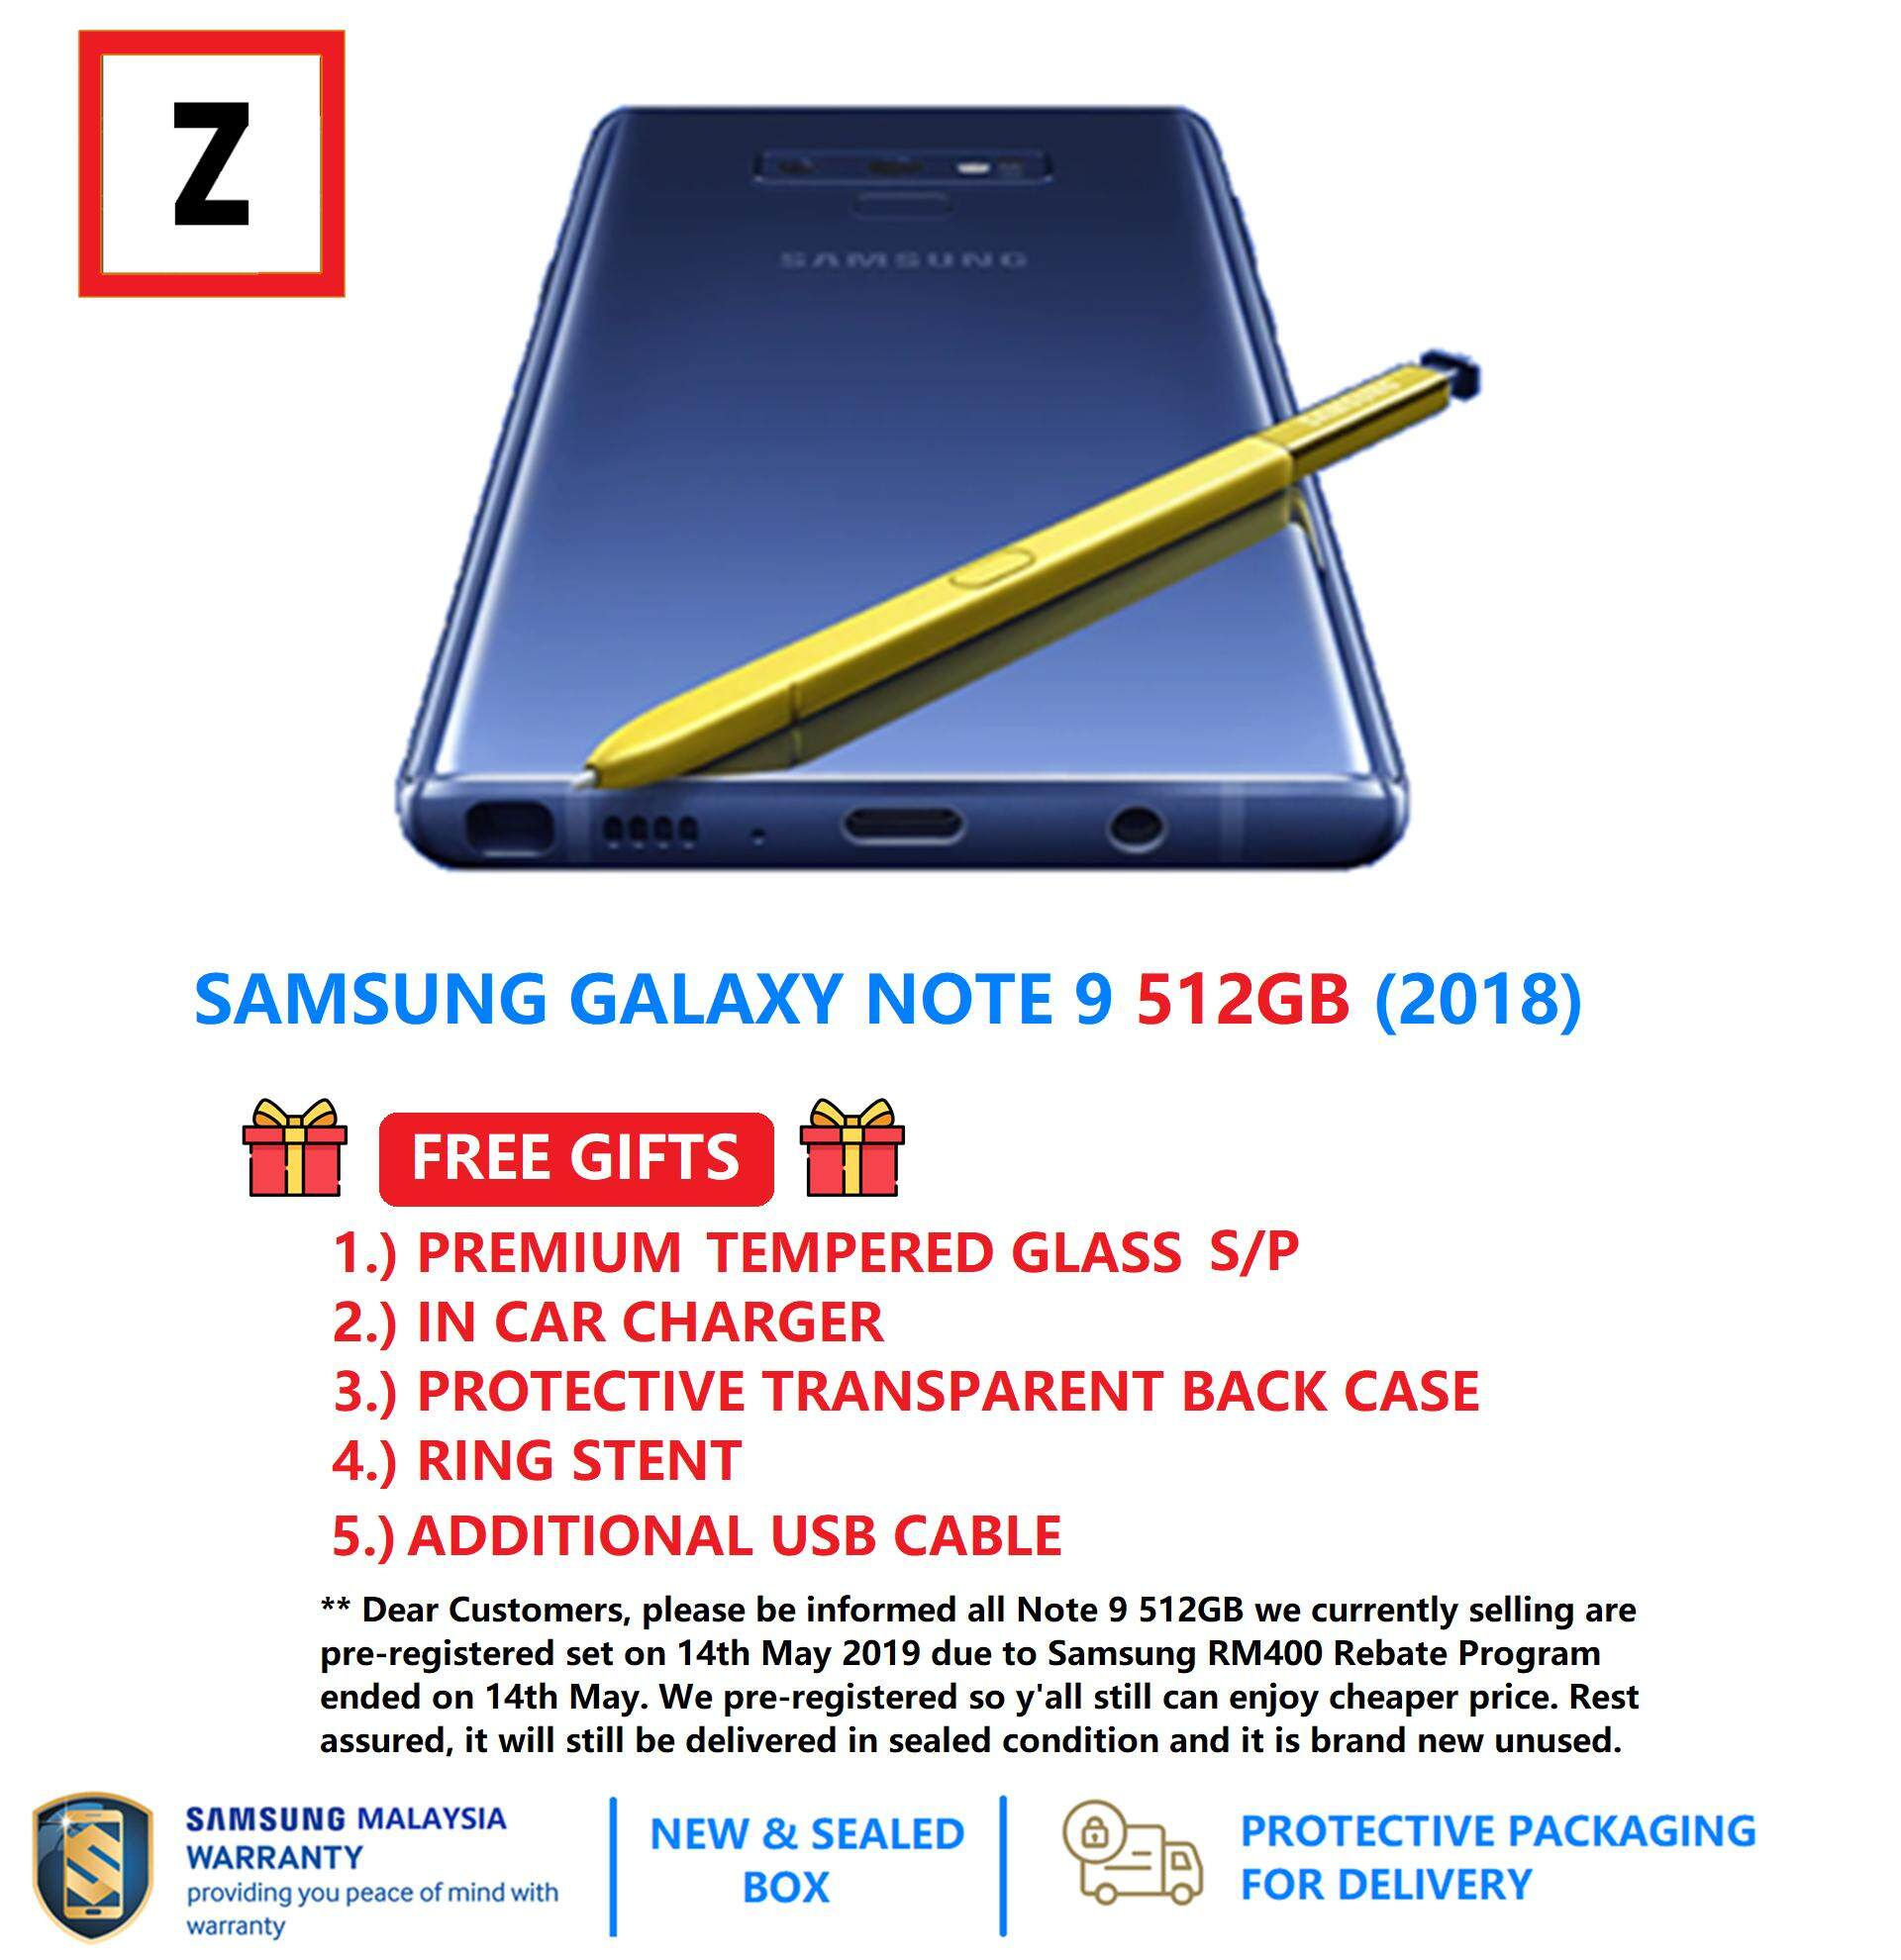 [FREE SHIPPING & FREE GIFTS] SAMSUNG GALAXY NOTE 9 512GB [DUAL SIM / 8GB  RAM / 512GB / 4G LTE / IP68] [PRE-REGISTERED ON 14TH MAY 2019] (100%  SAMSUNG